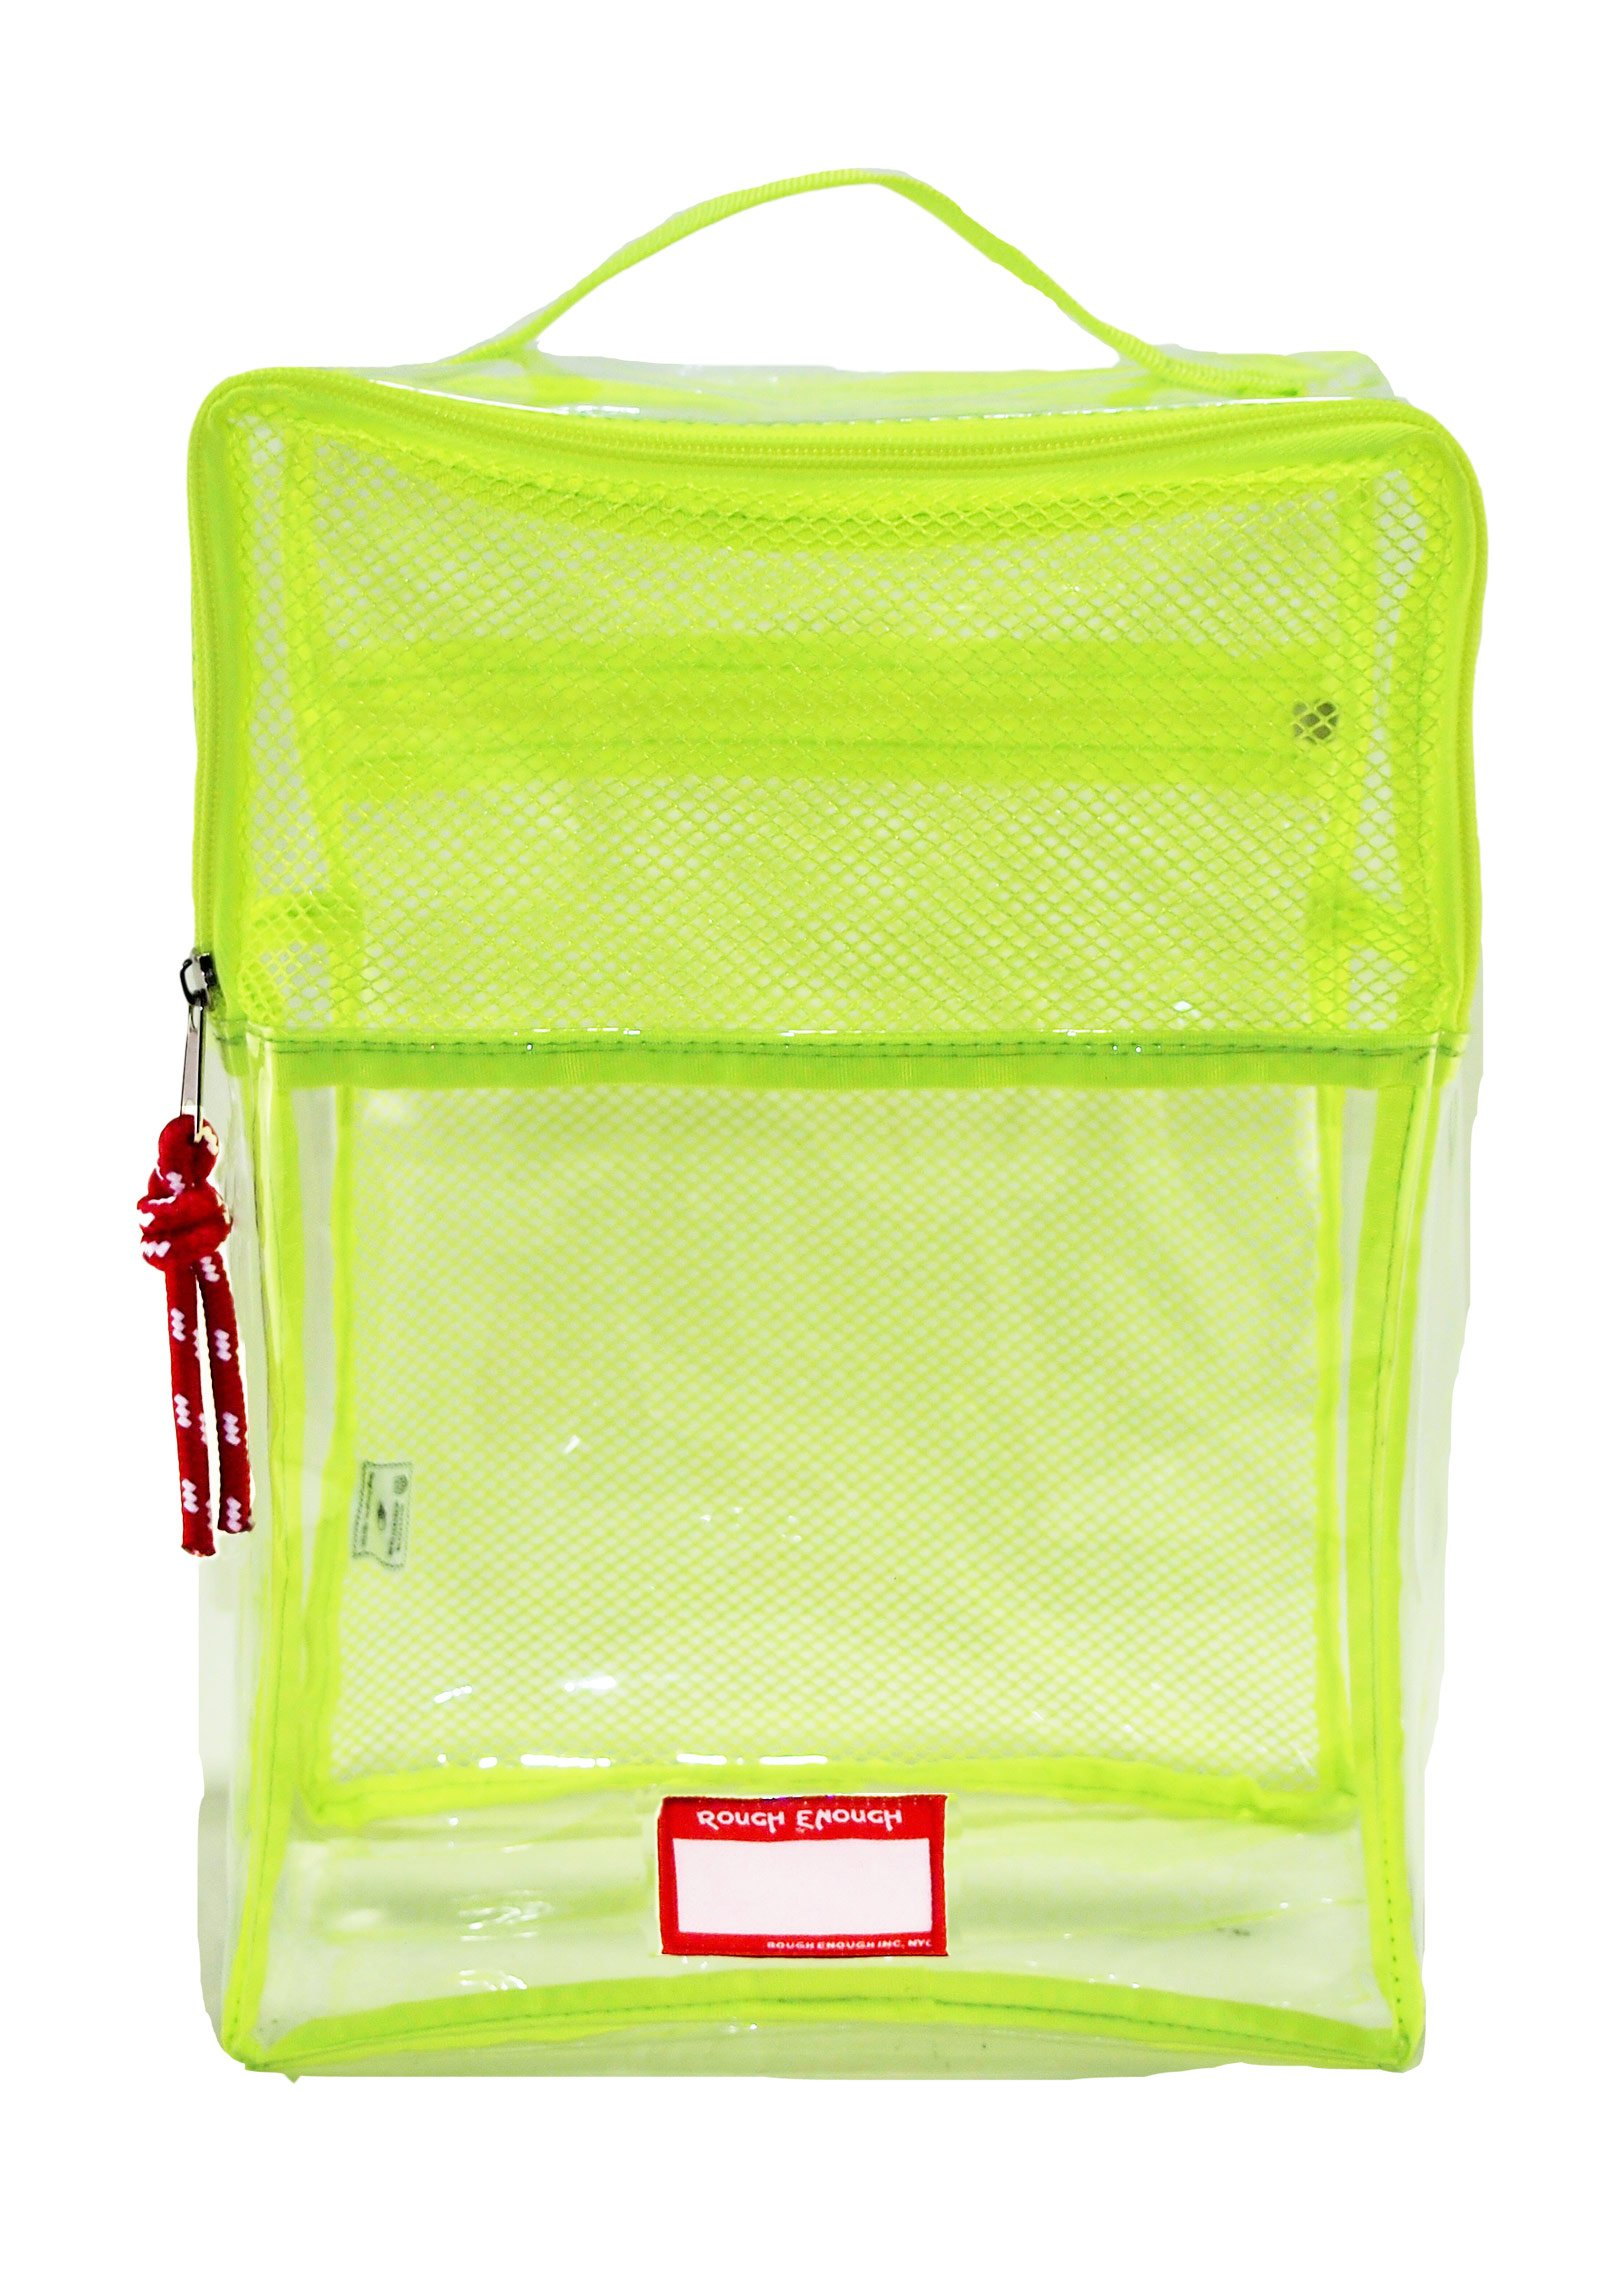 Rough Enough Clear Transparent Portable Big TPU Travel Shoes Bag Case Storage Packing Cube Luggage Closet Accessories Organizer with Zipper Mesh Compartment for Men Women Teens Sports Outdoors